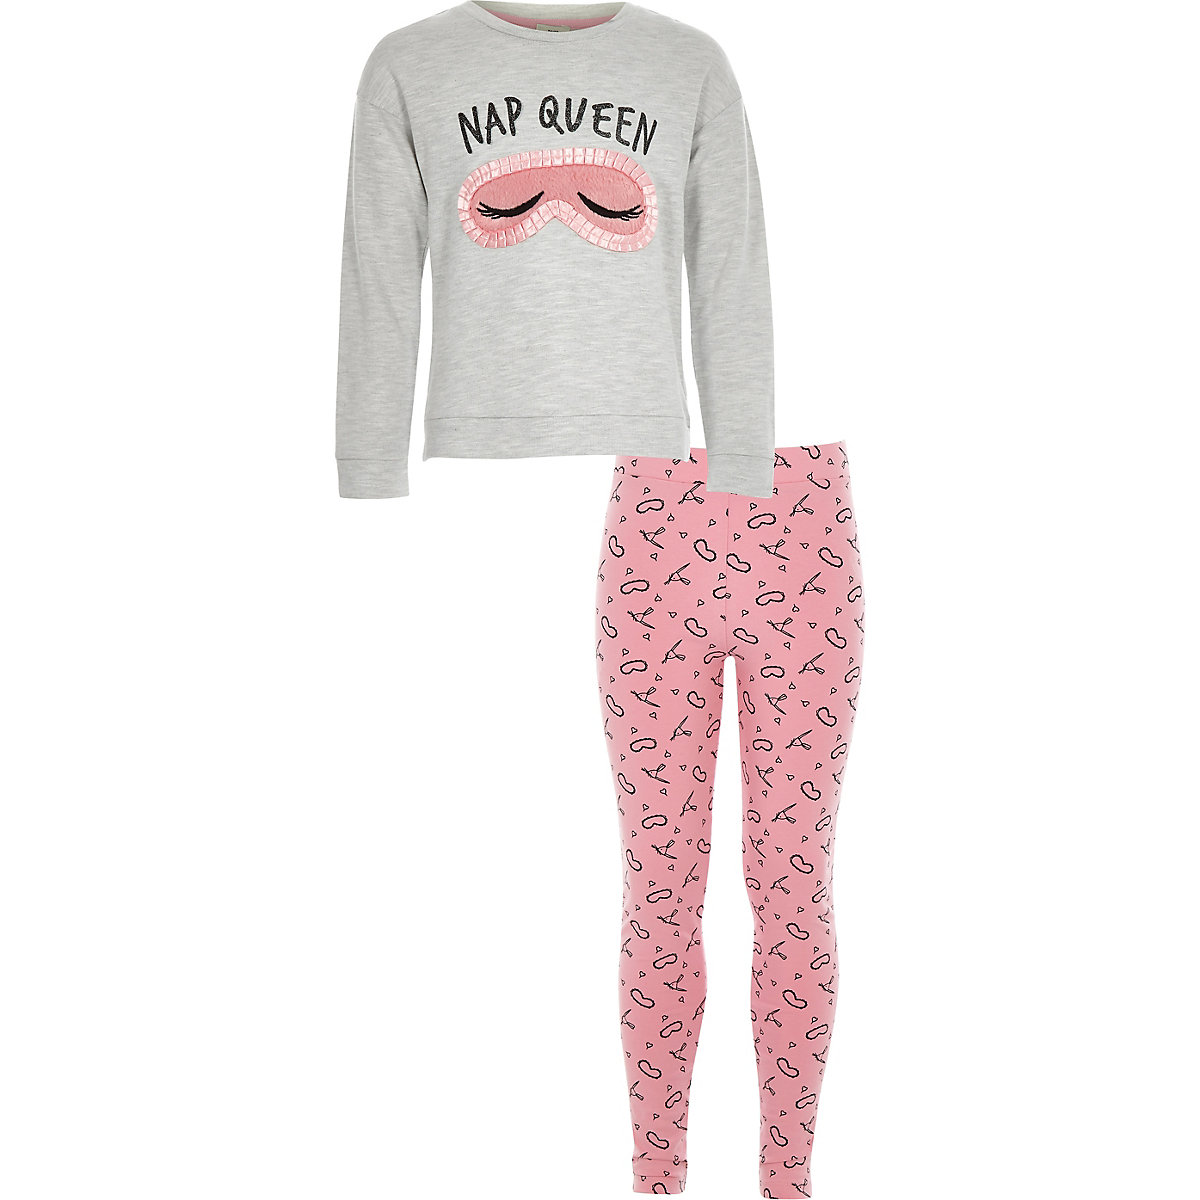 Girls grey 'nap queen' pyjama set